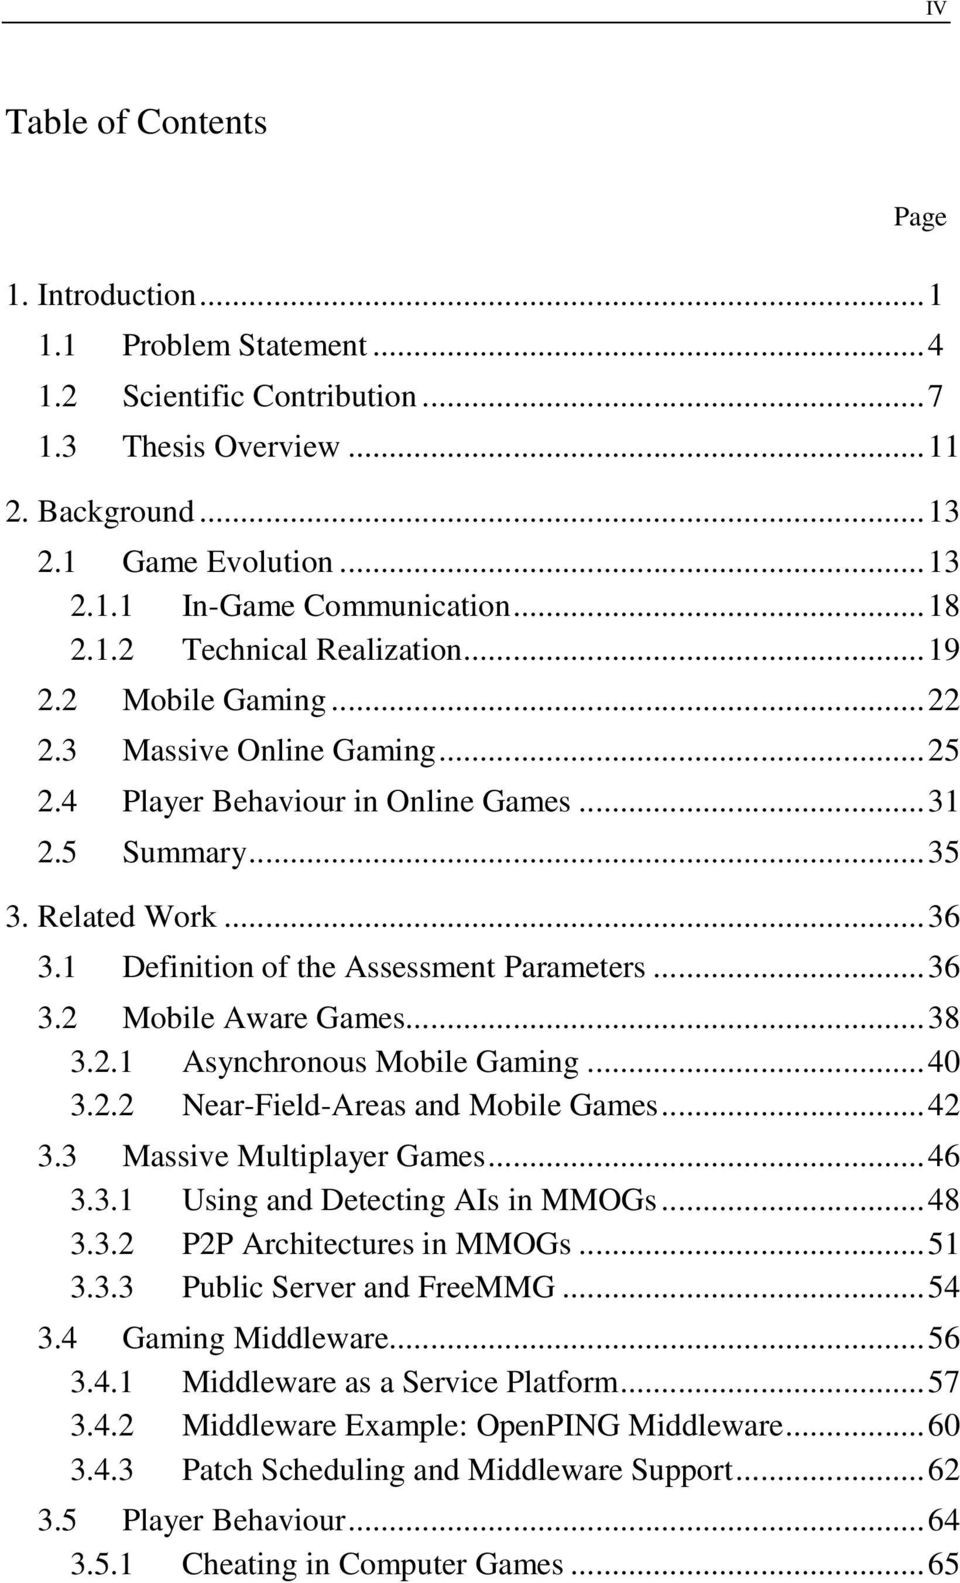 1 Definition of the Assessment Parameters...36 3.2 Mobile Aware Games...38 3.2.1 Asynchronous Mobile Gaming...40 3.2.2 Near-Field-Areas and Mobile Games...42 3.3 Massive Multiplayer Games...46 3.3.1 Using and Detecting AIs in MMOGs.